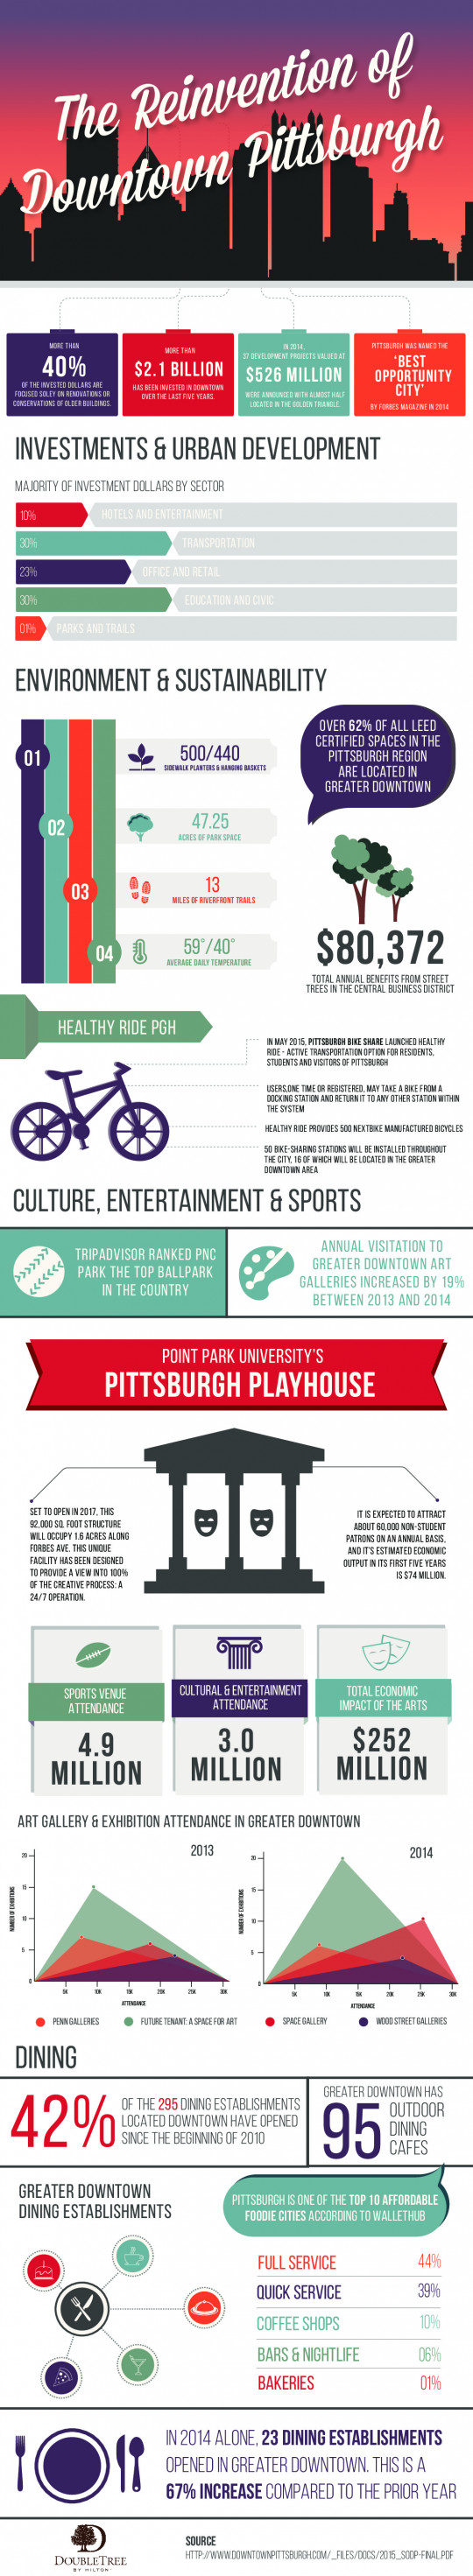 The Reinvention of Downtown Pittsburgh